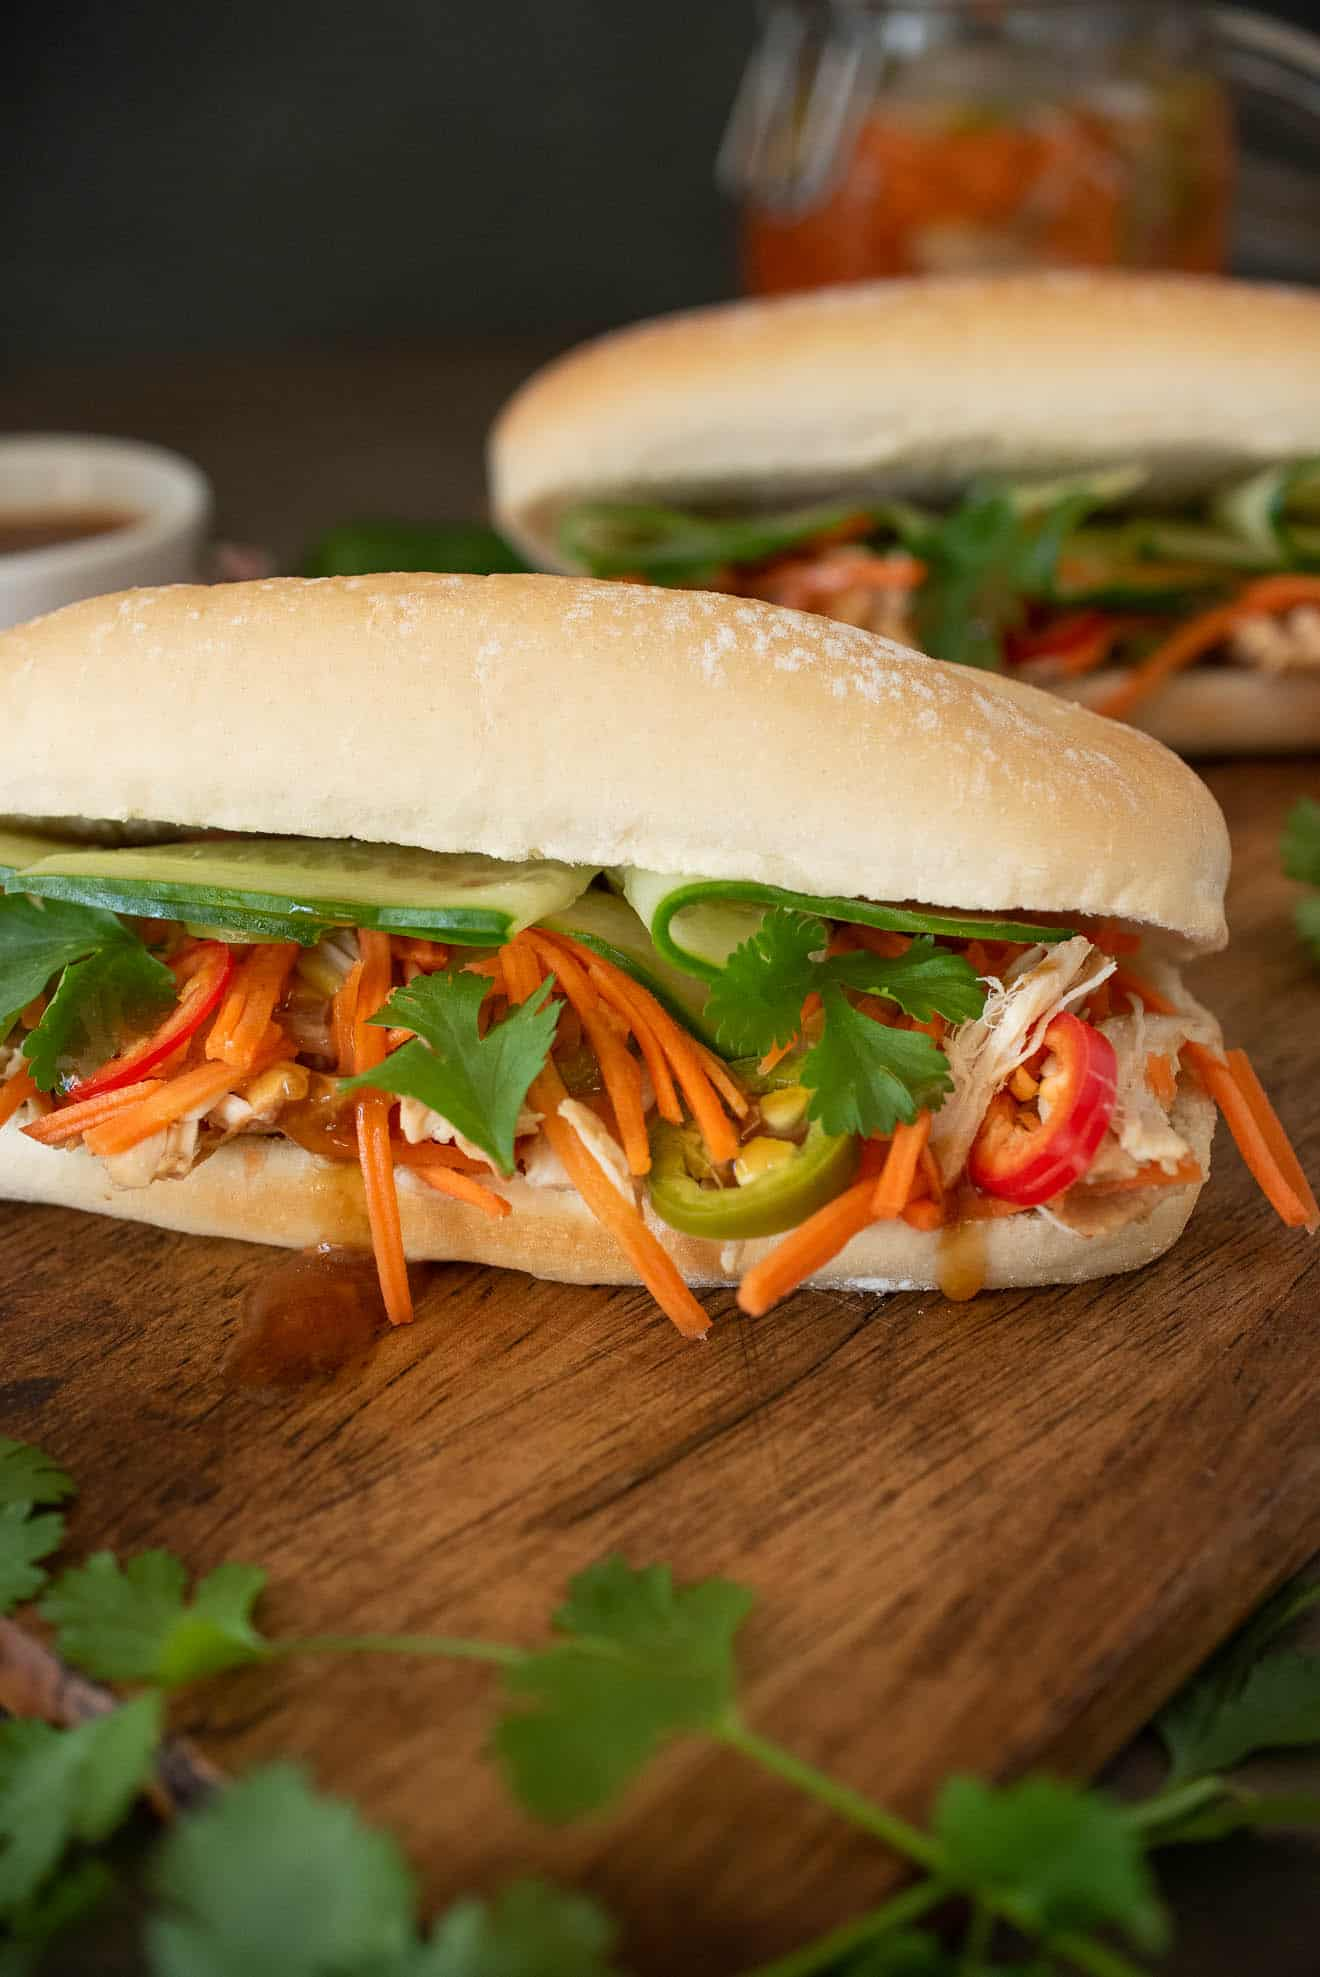 Shredded chicken, carrot slaw, cilantro and cucumber spilling out of a banh mi sandwich